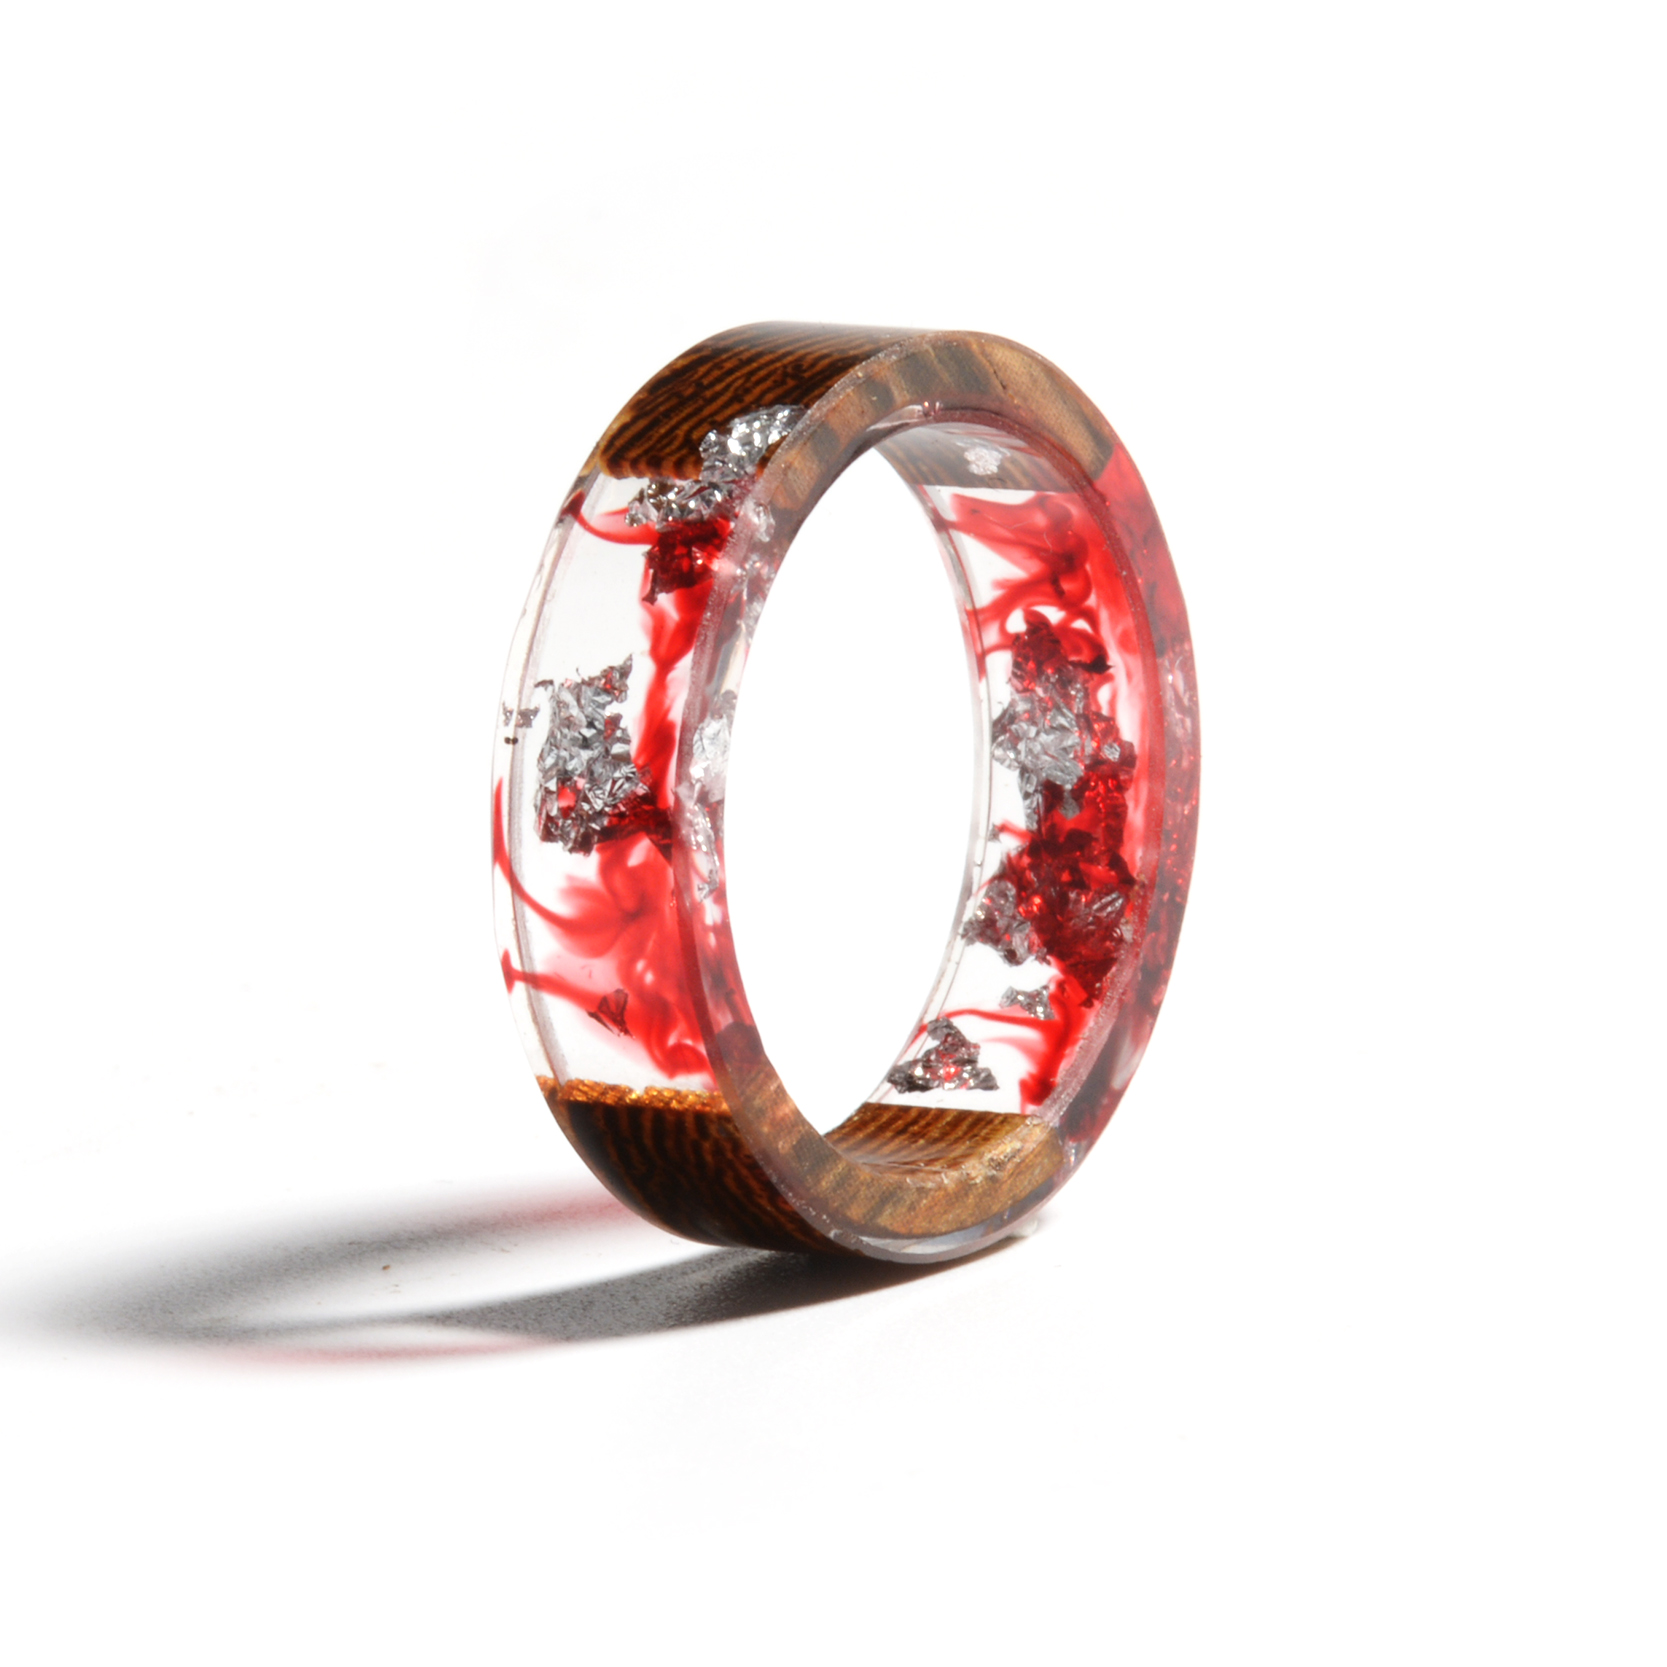 HTB16oNVajzuK1RjSsppq6xz0XXaJ - Flower World Ring